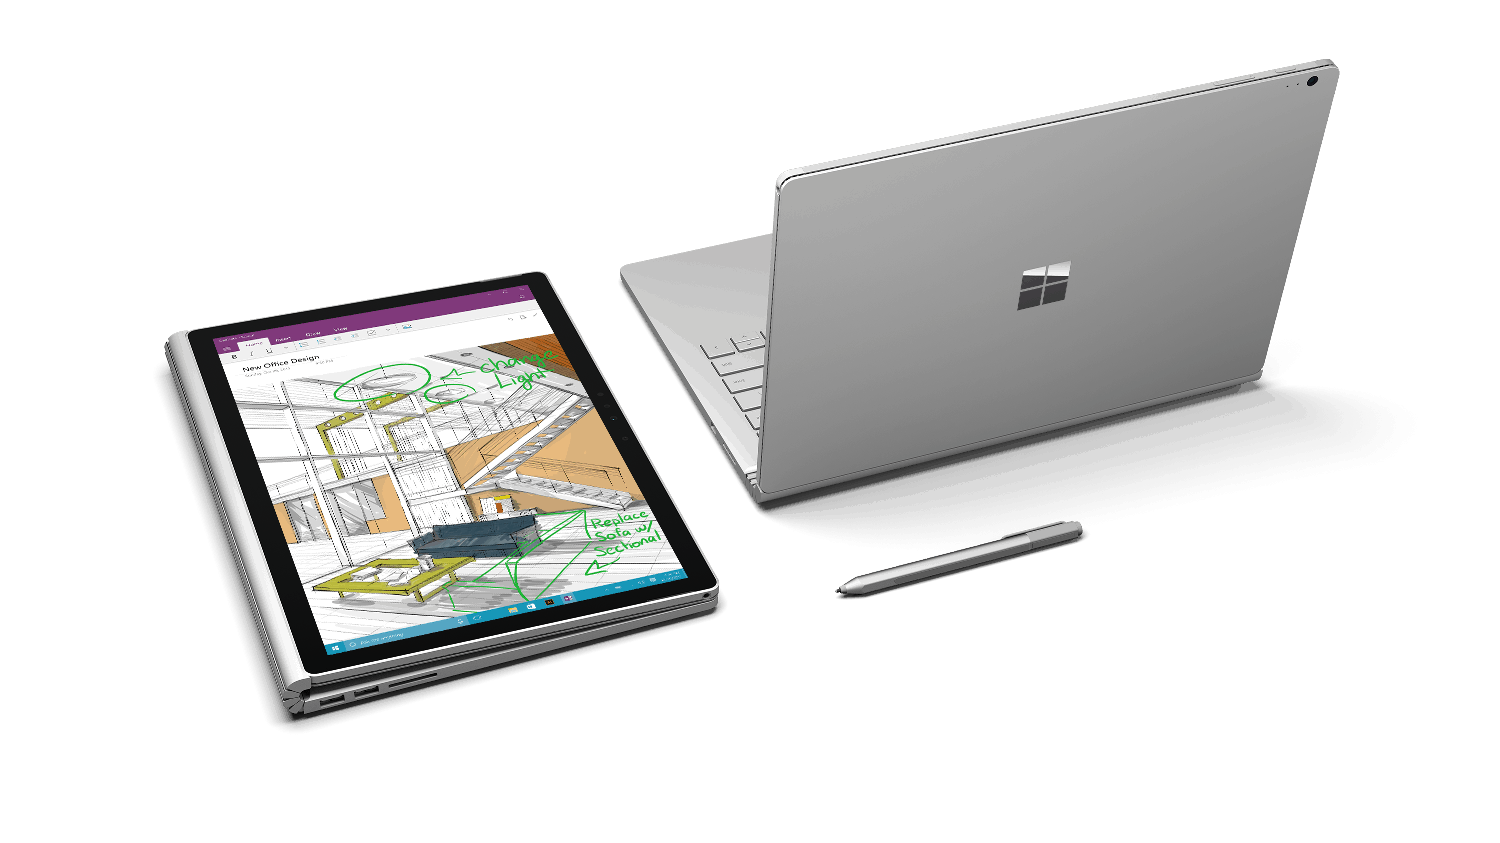 Surface Book multiuse